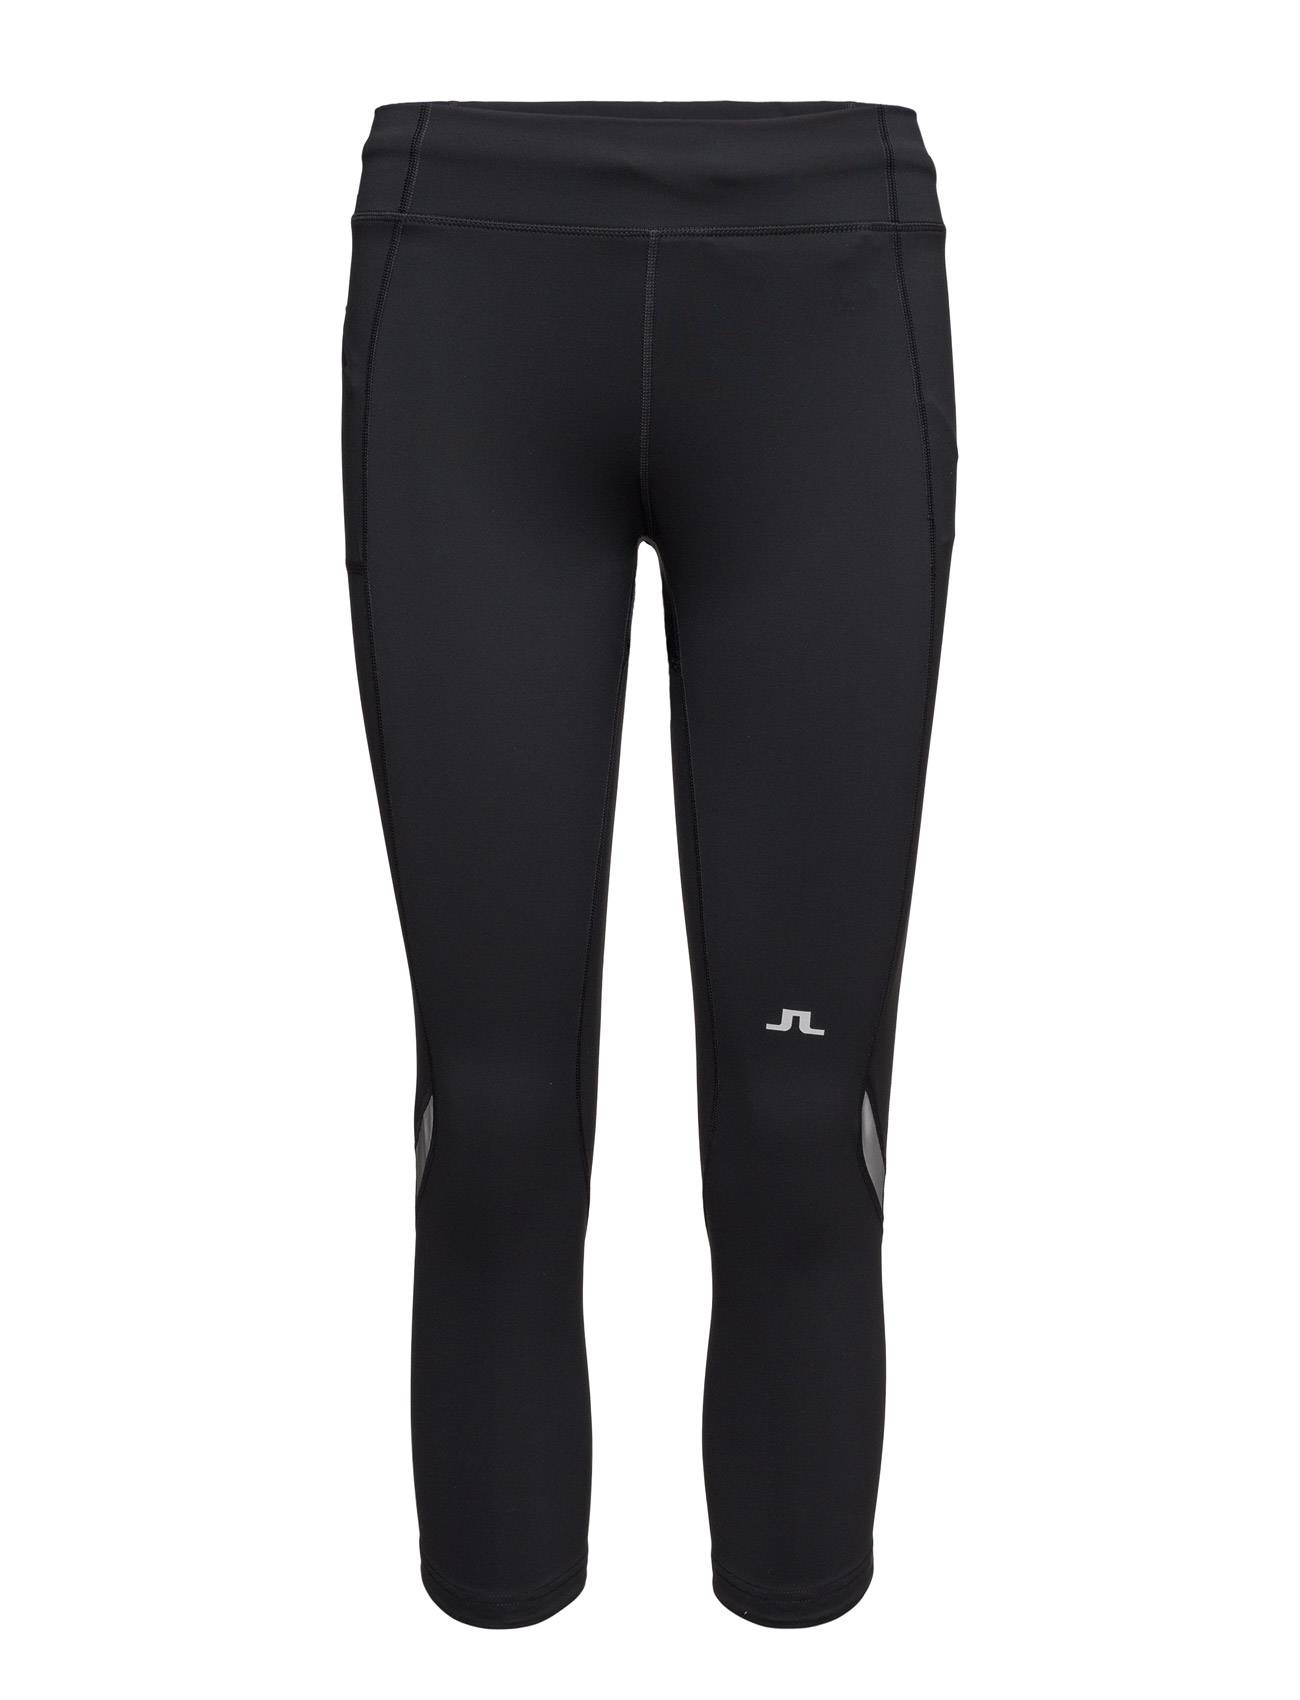 J. Lindeberg W Running Tights 3.4 Comp. P.